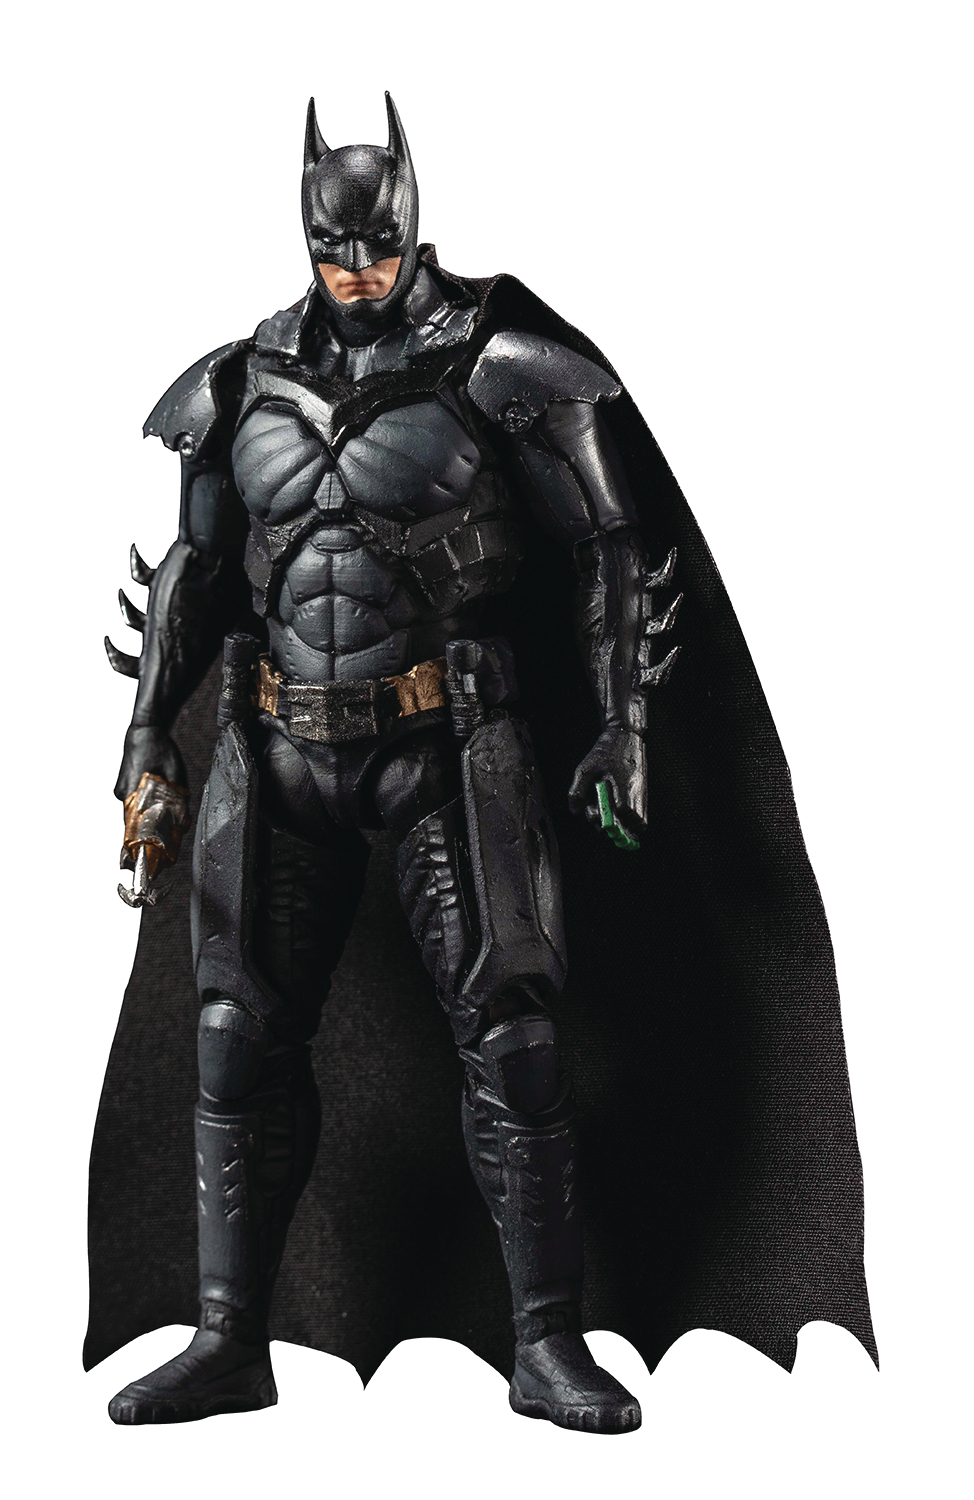 INJUSTICE 2 BATMAN PX 1/18 SCALE FIG ENHANCED VER